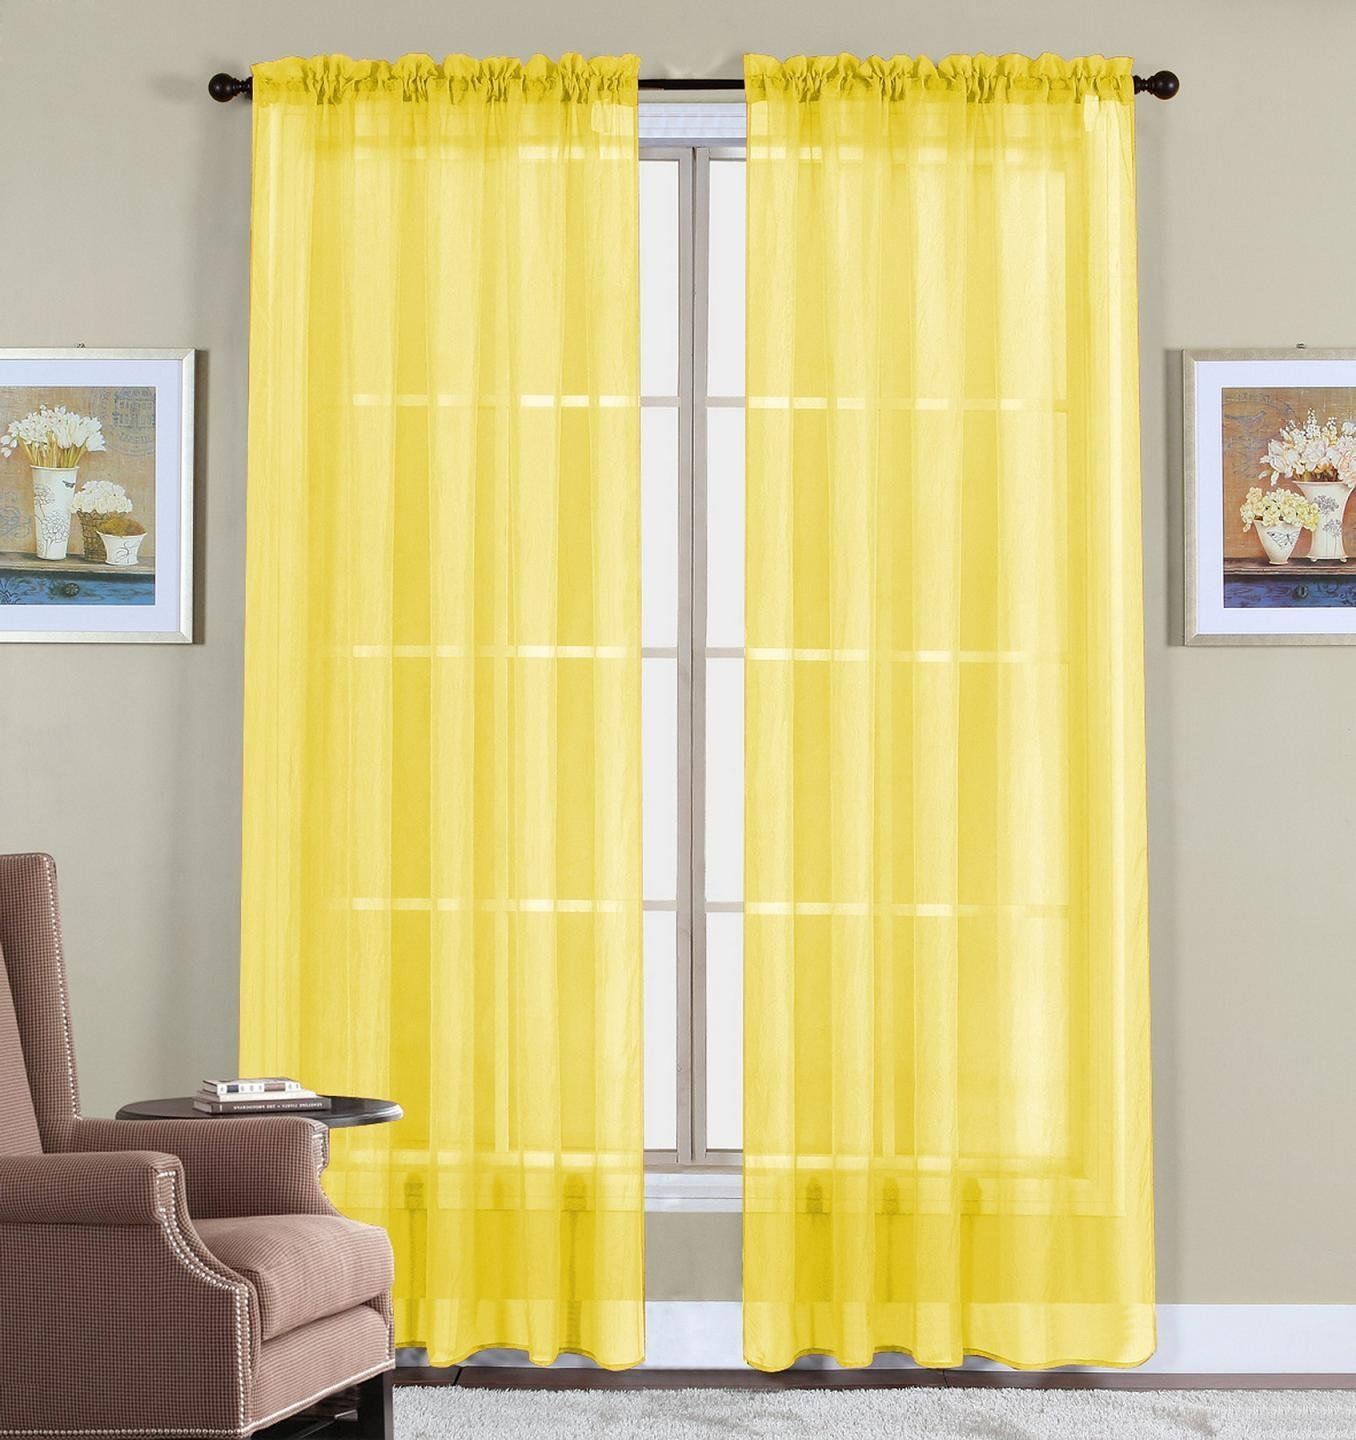 Curtains/drape/panels/treatment Bright Yellow